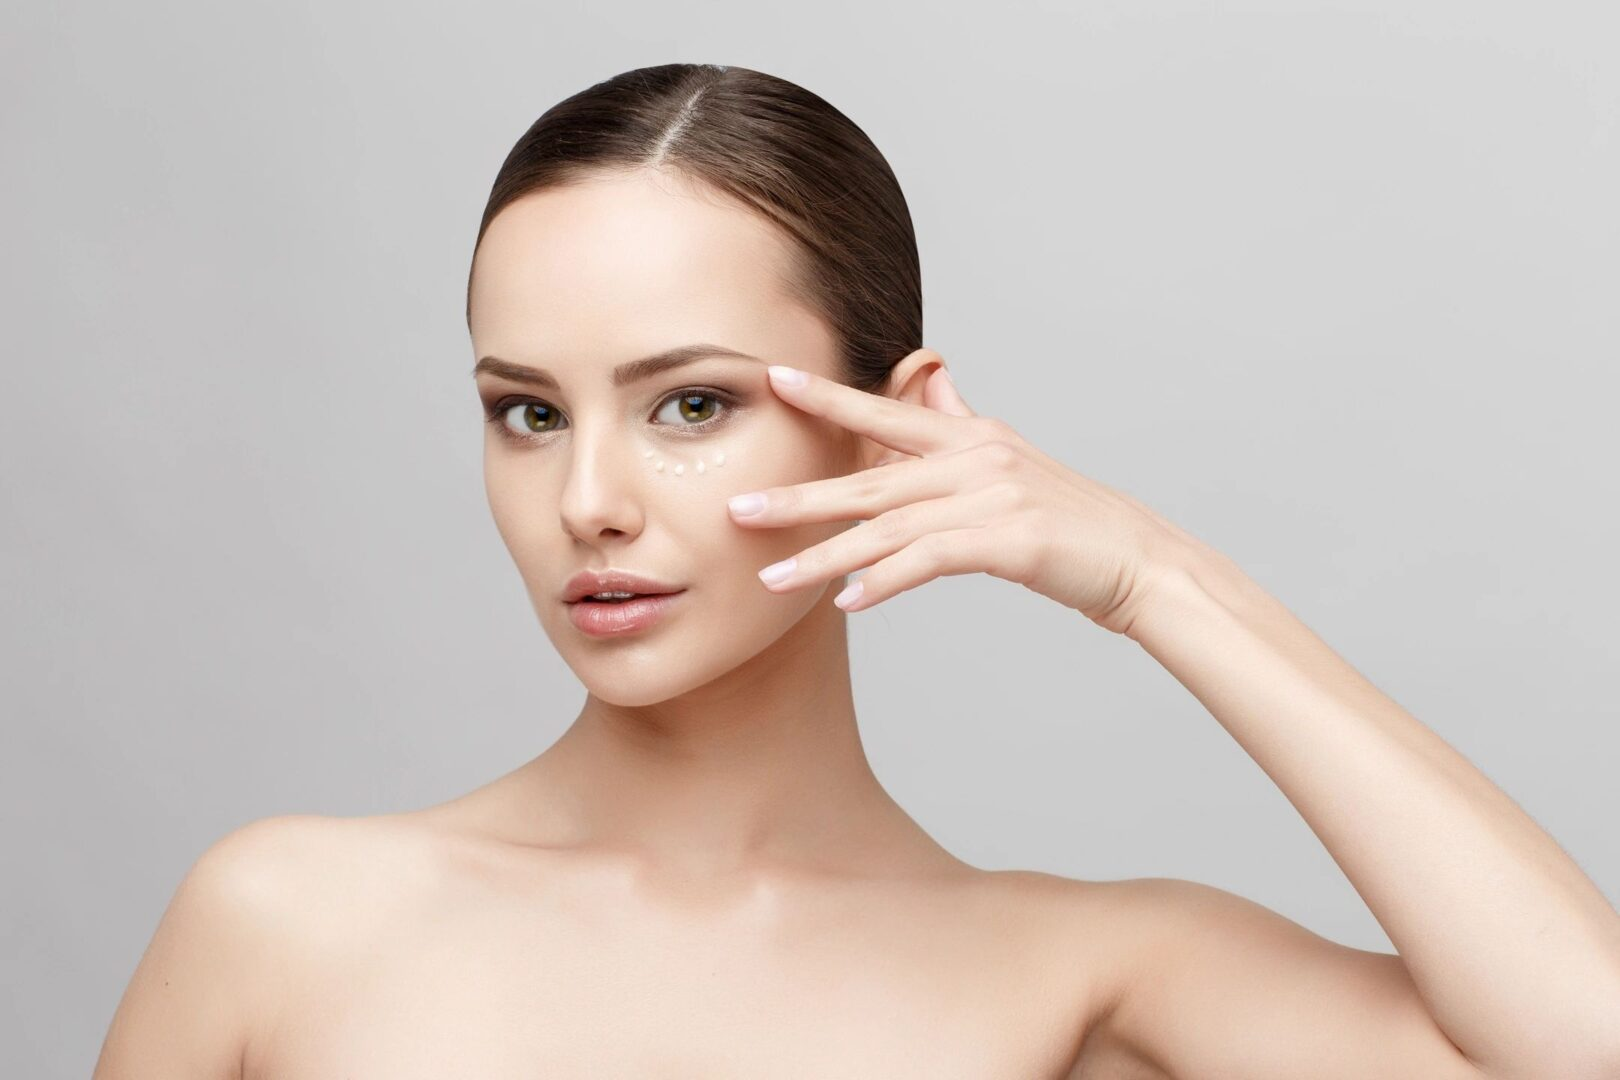 A woman putting skin care product on her face